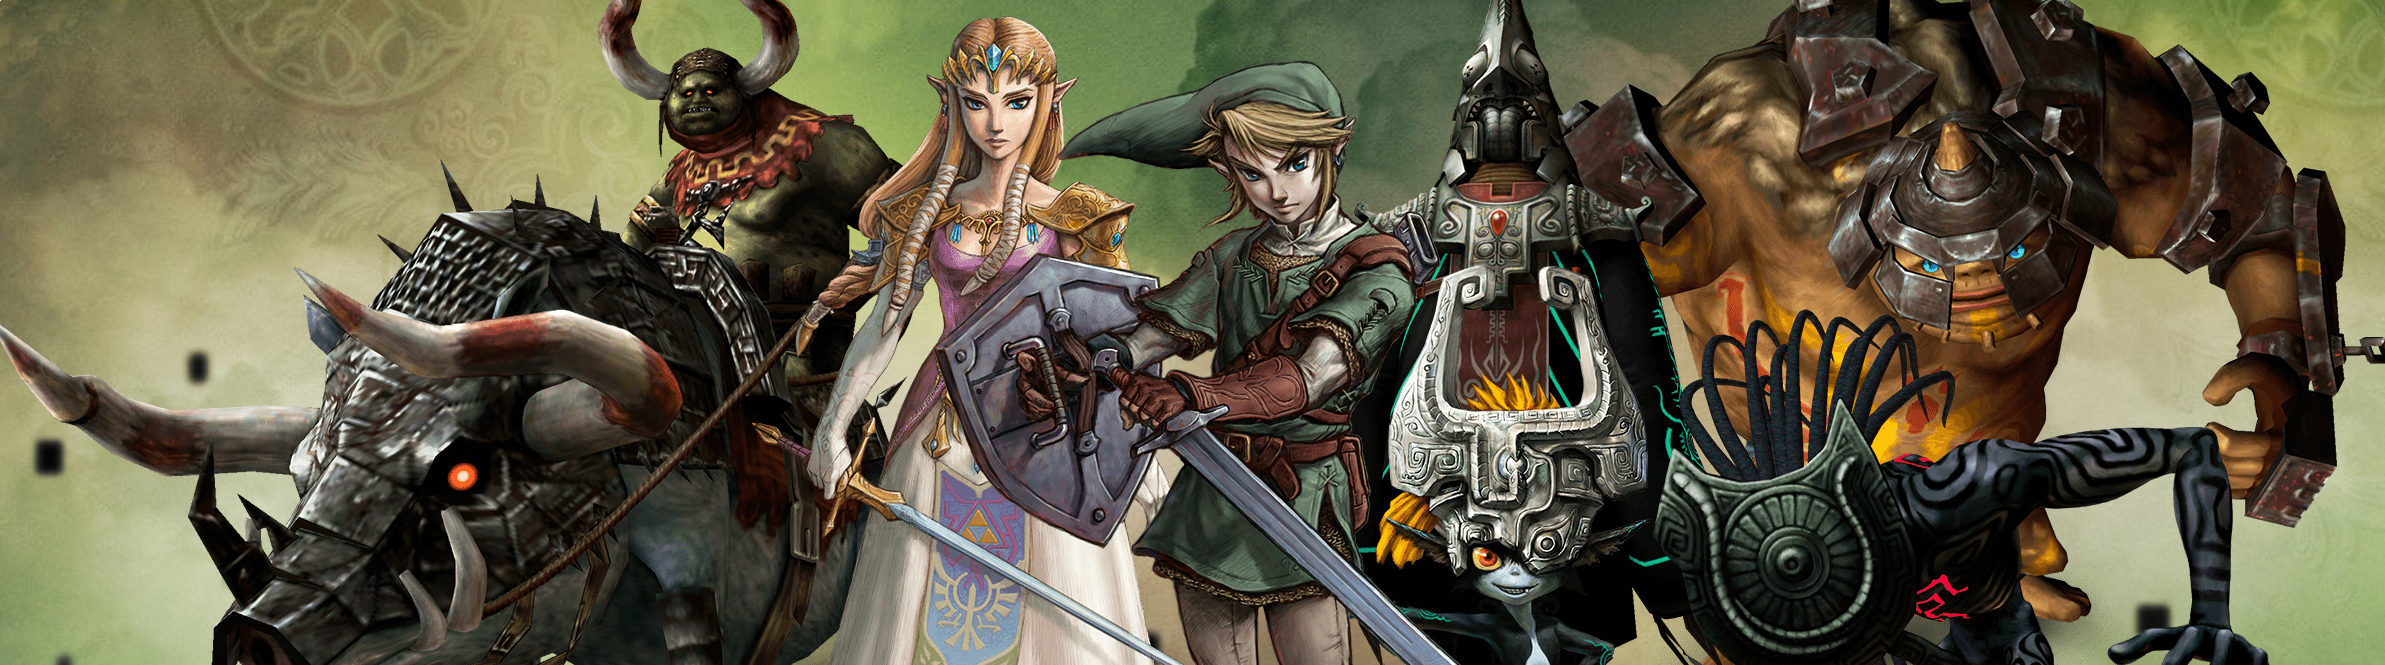 Banner The Legend of Zelda Twilight Princess